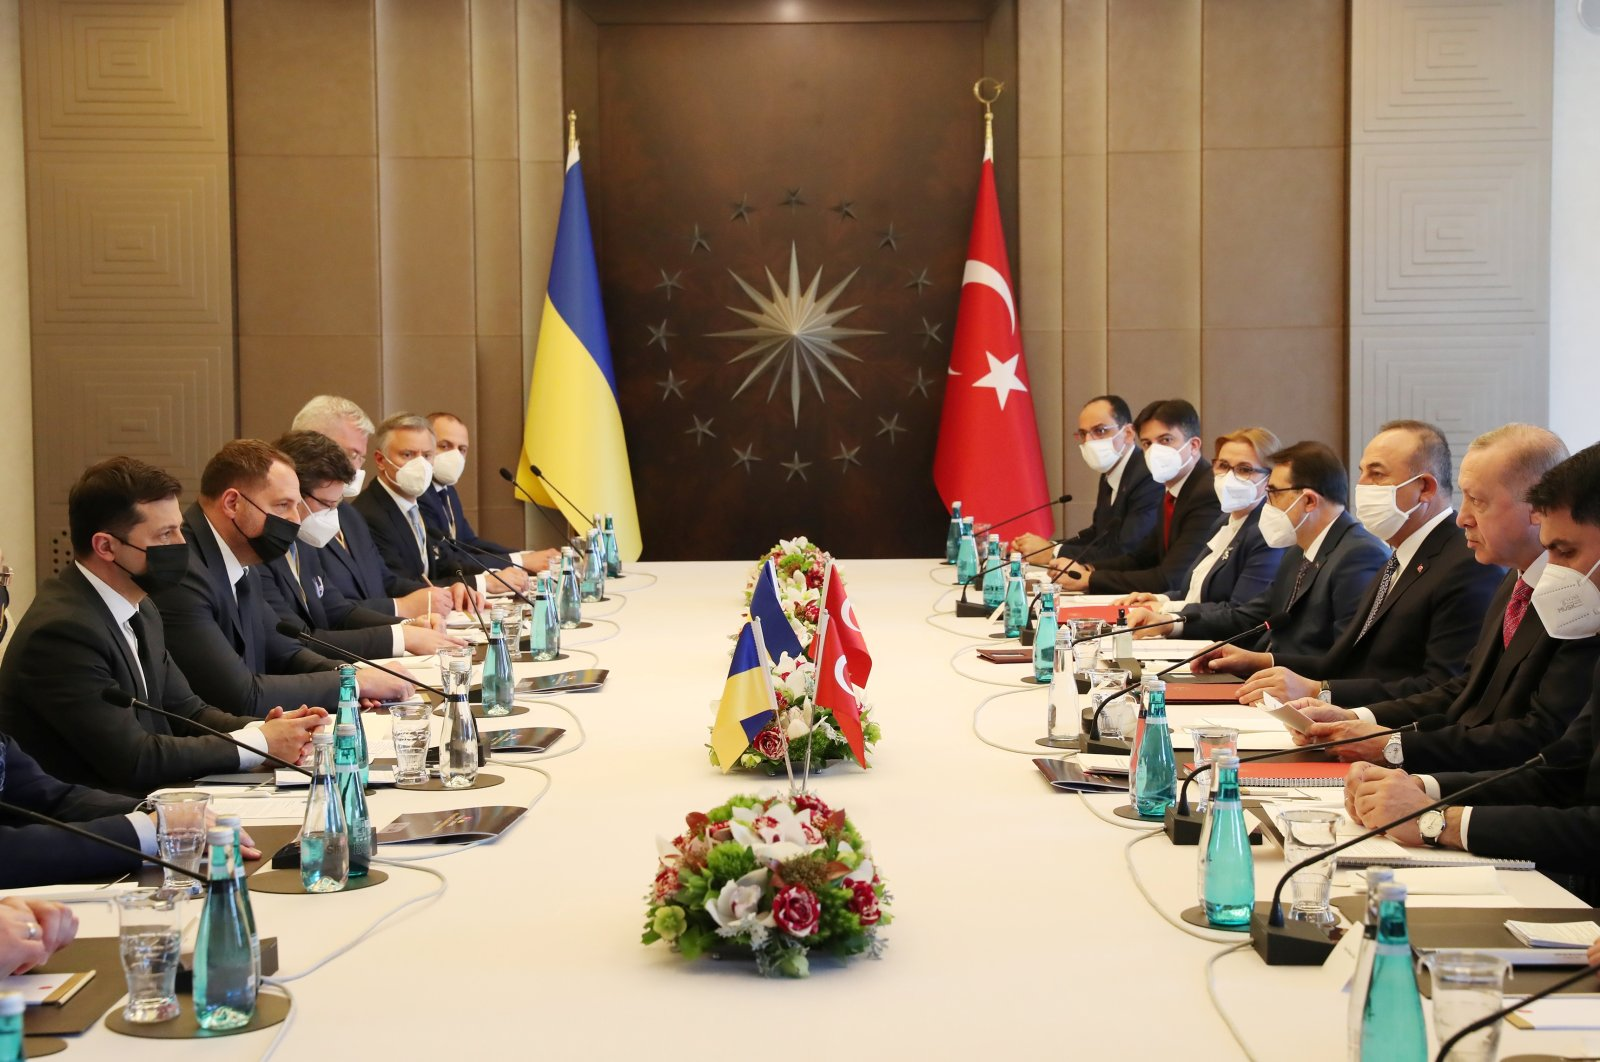 President Recep Tayyip Erdoğan and Ukraine's President Volodymyr Zelenskiy attend a meeting in Istanbul, Turkey, April 10, 2021. (REUTERS)